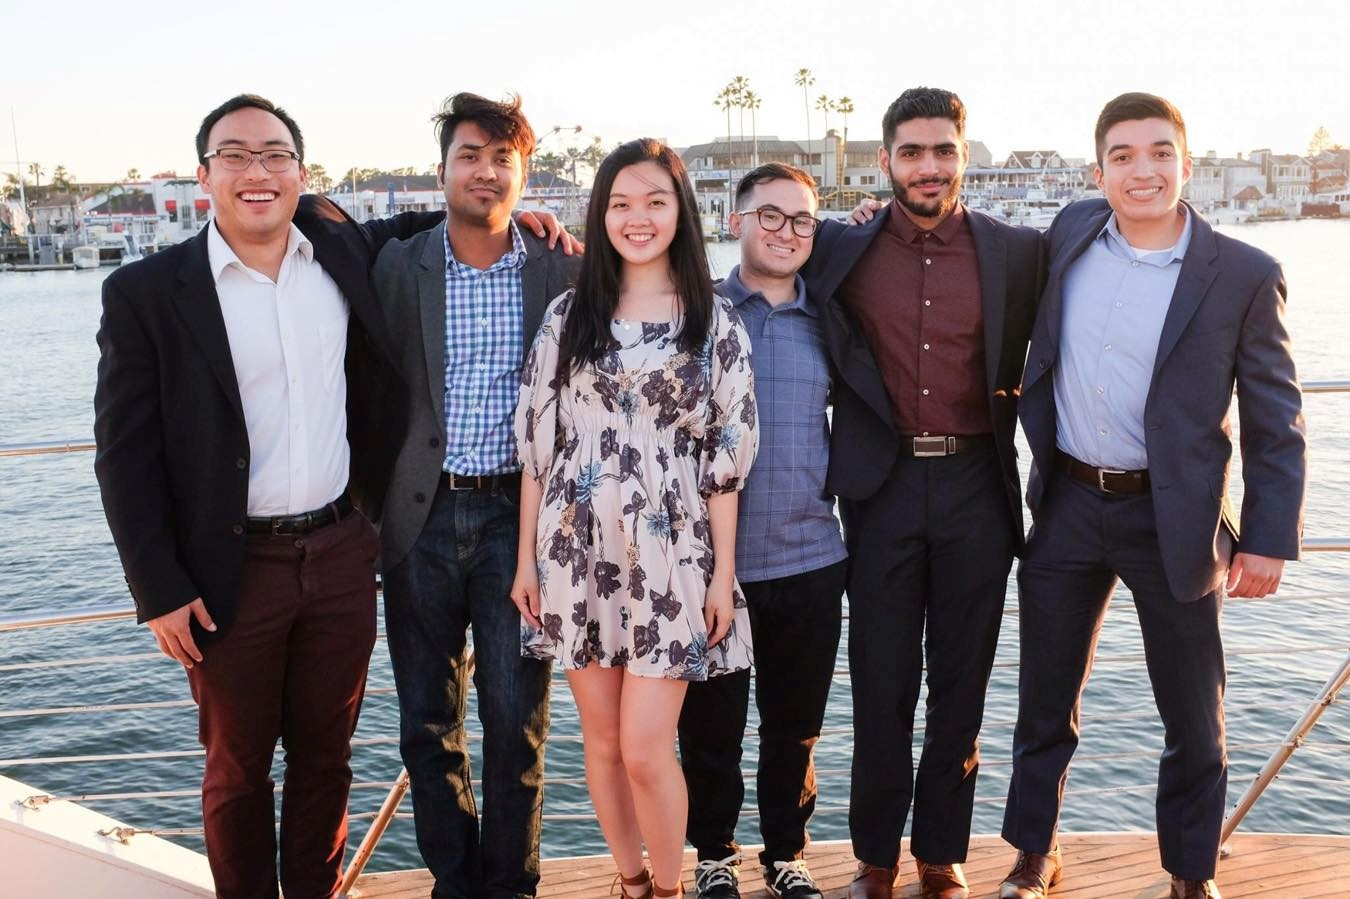 Members of the CSUF Mihaylo College Finance Association (FA) on a yacht in Newport Beach Harbor in Southern California.